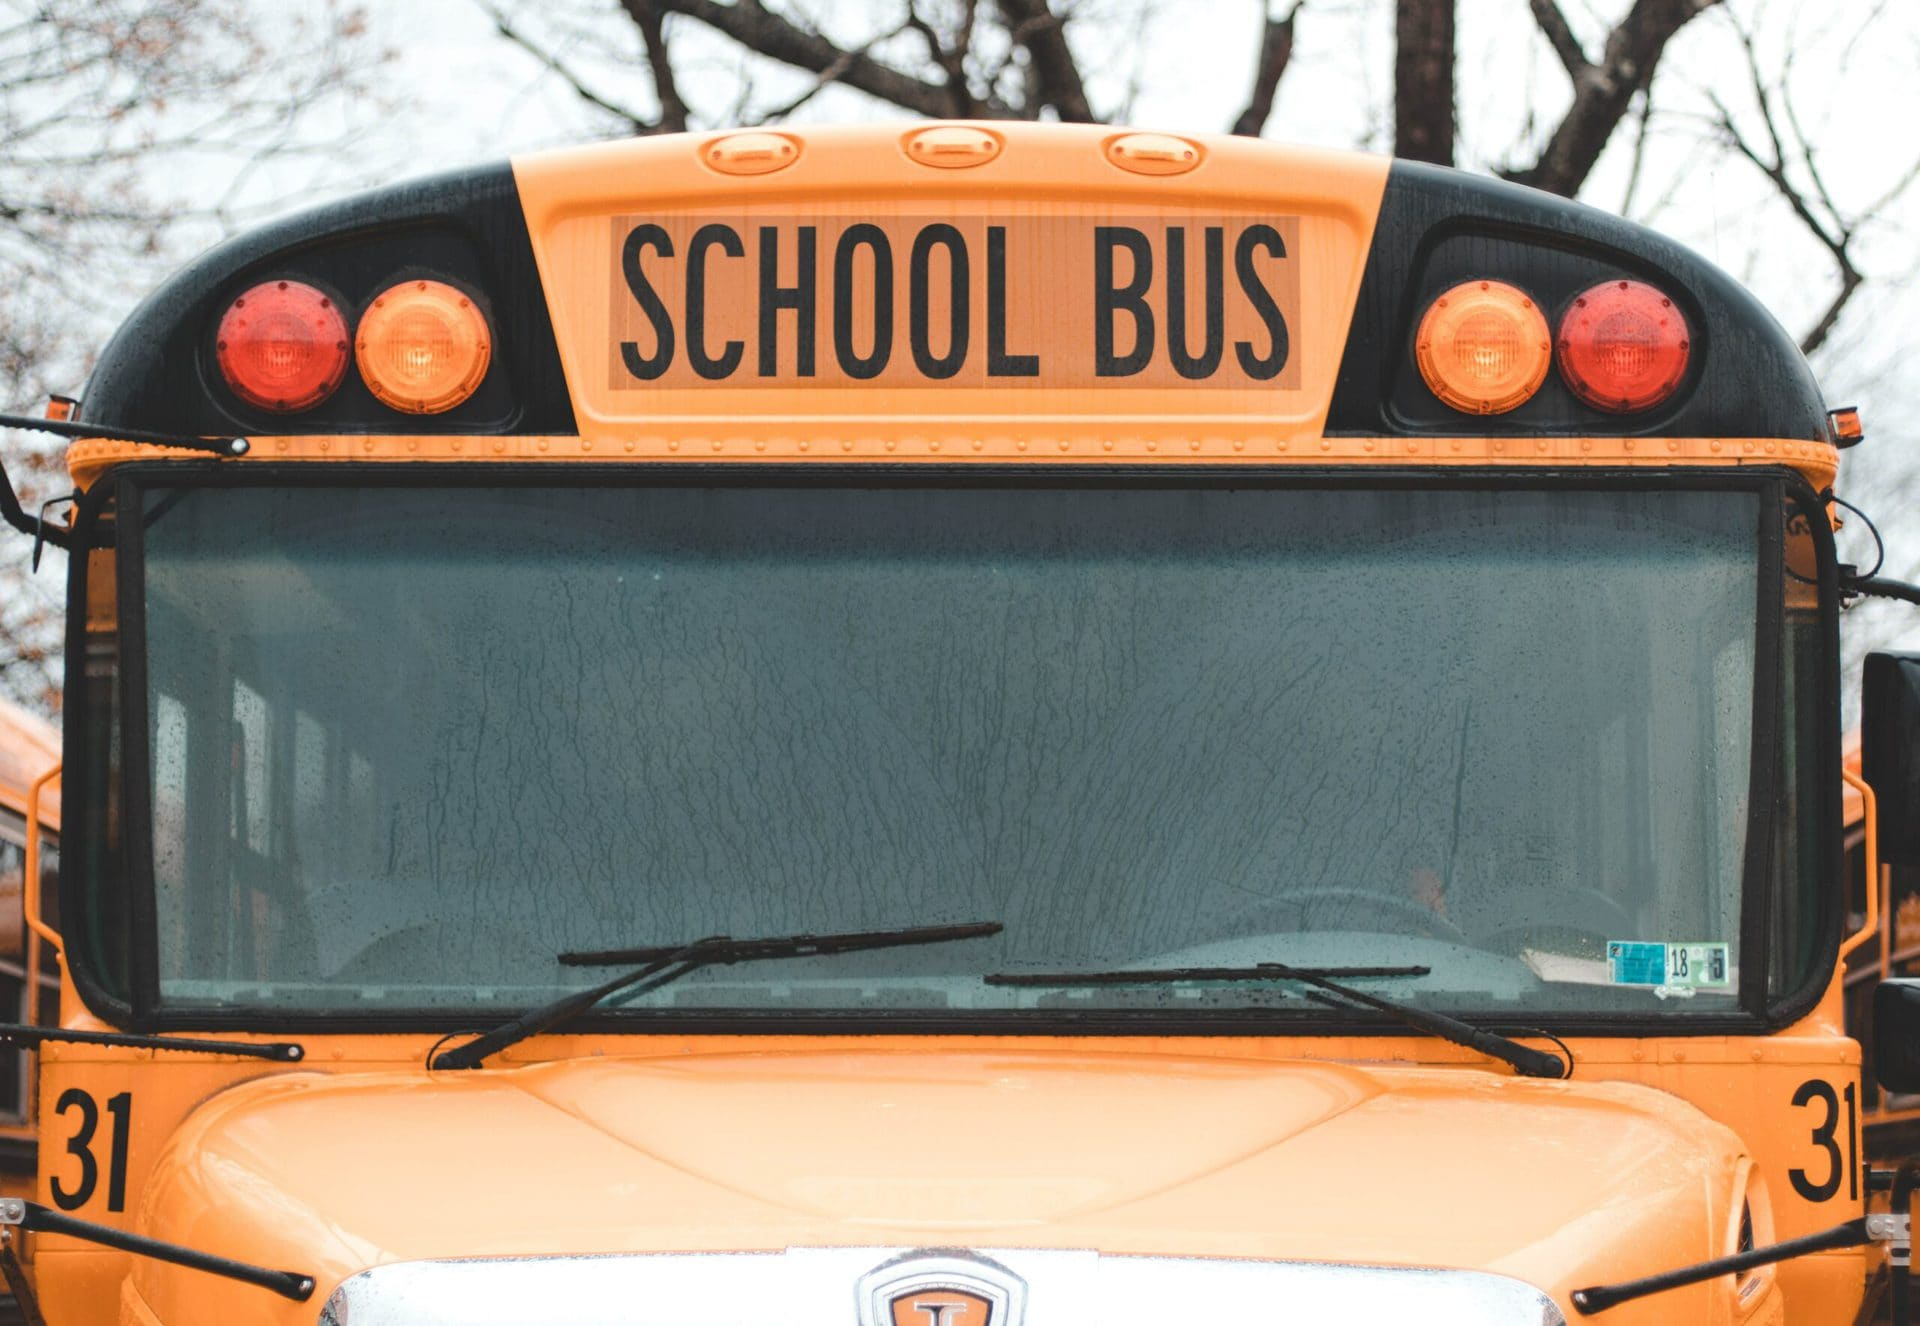 Eight Upshur Schools Transportation Department employees test positive for COVID-19; 23 quarantined